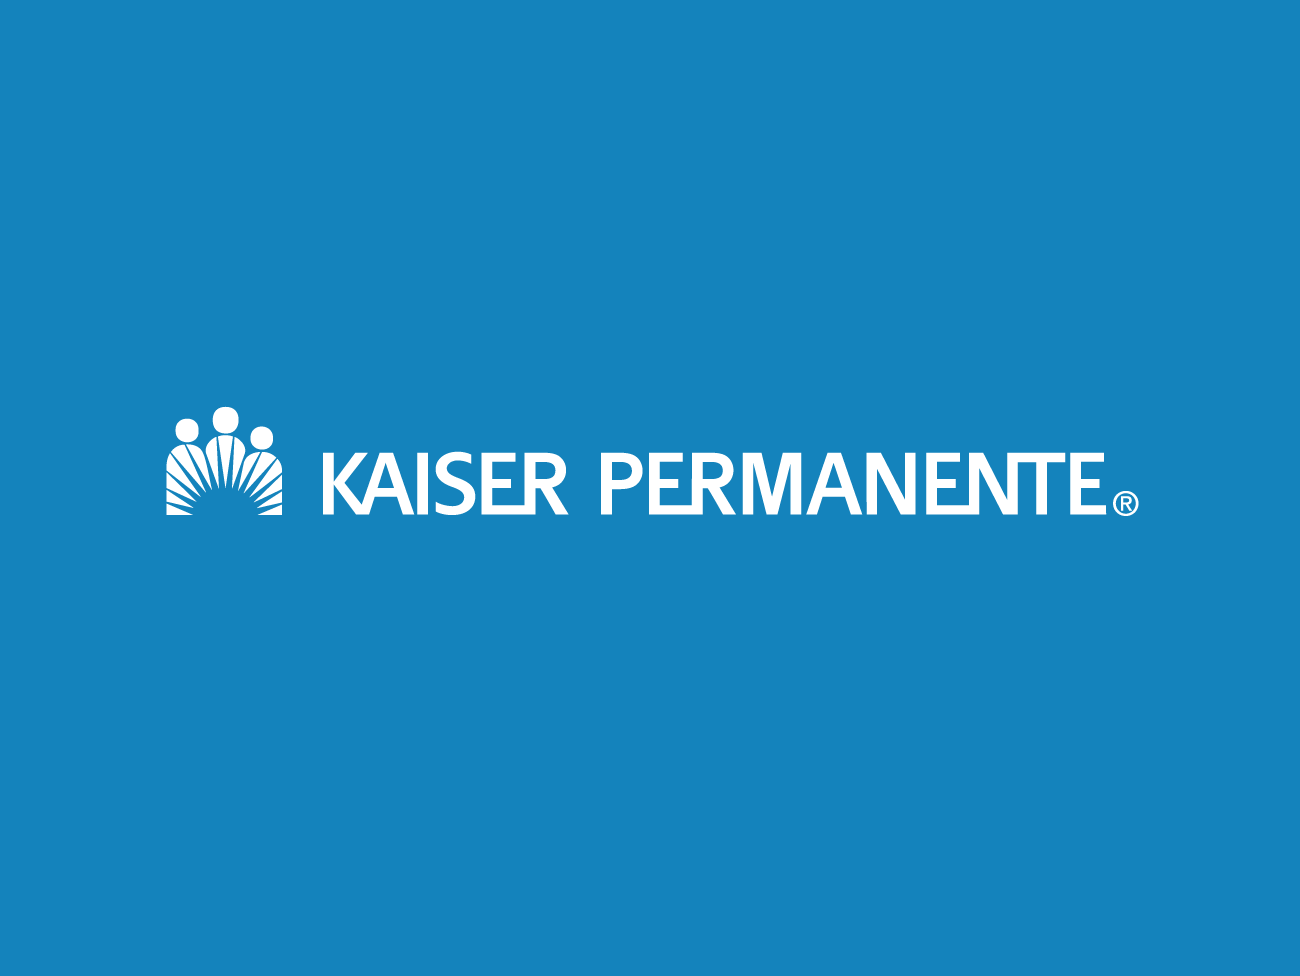 White Daiser Permanente logo on blue background.